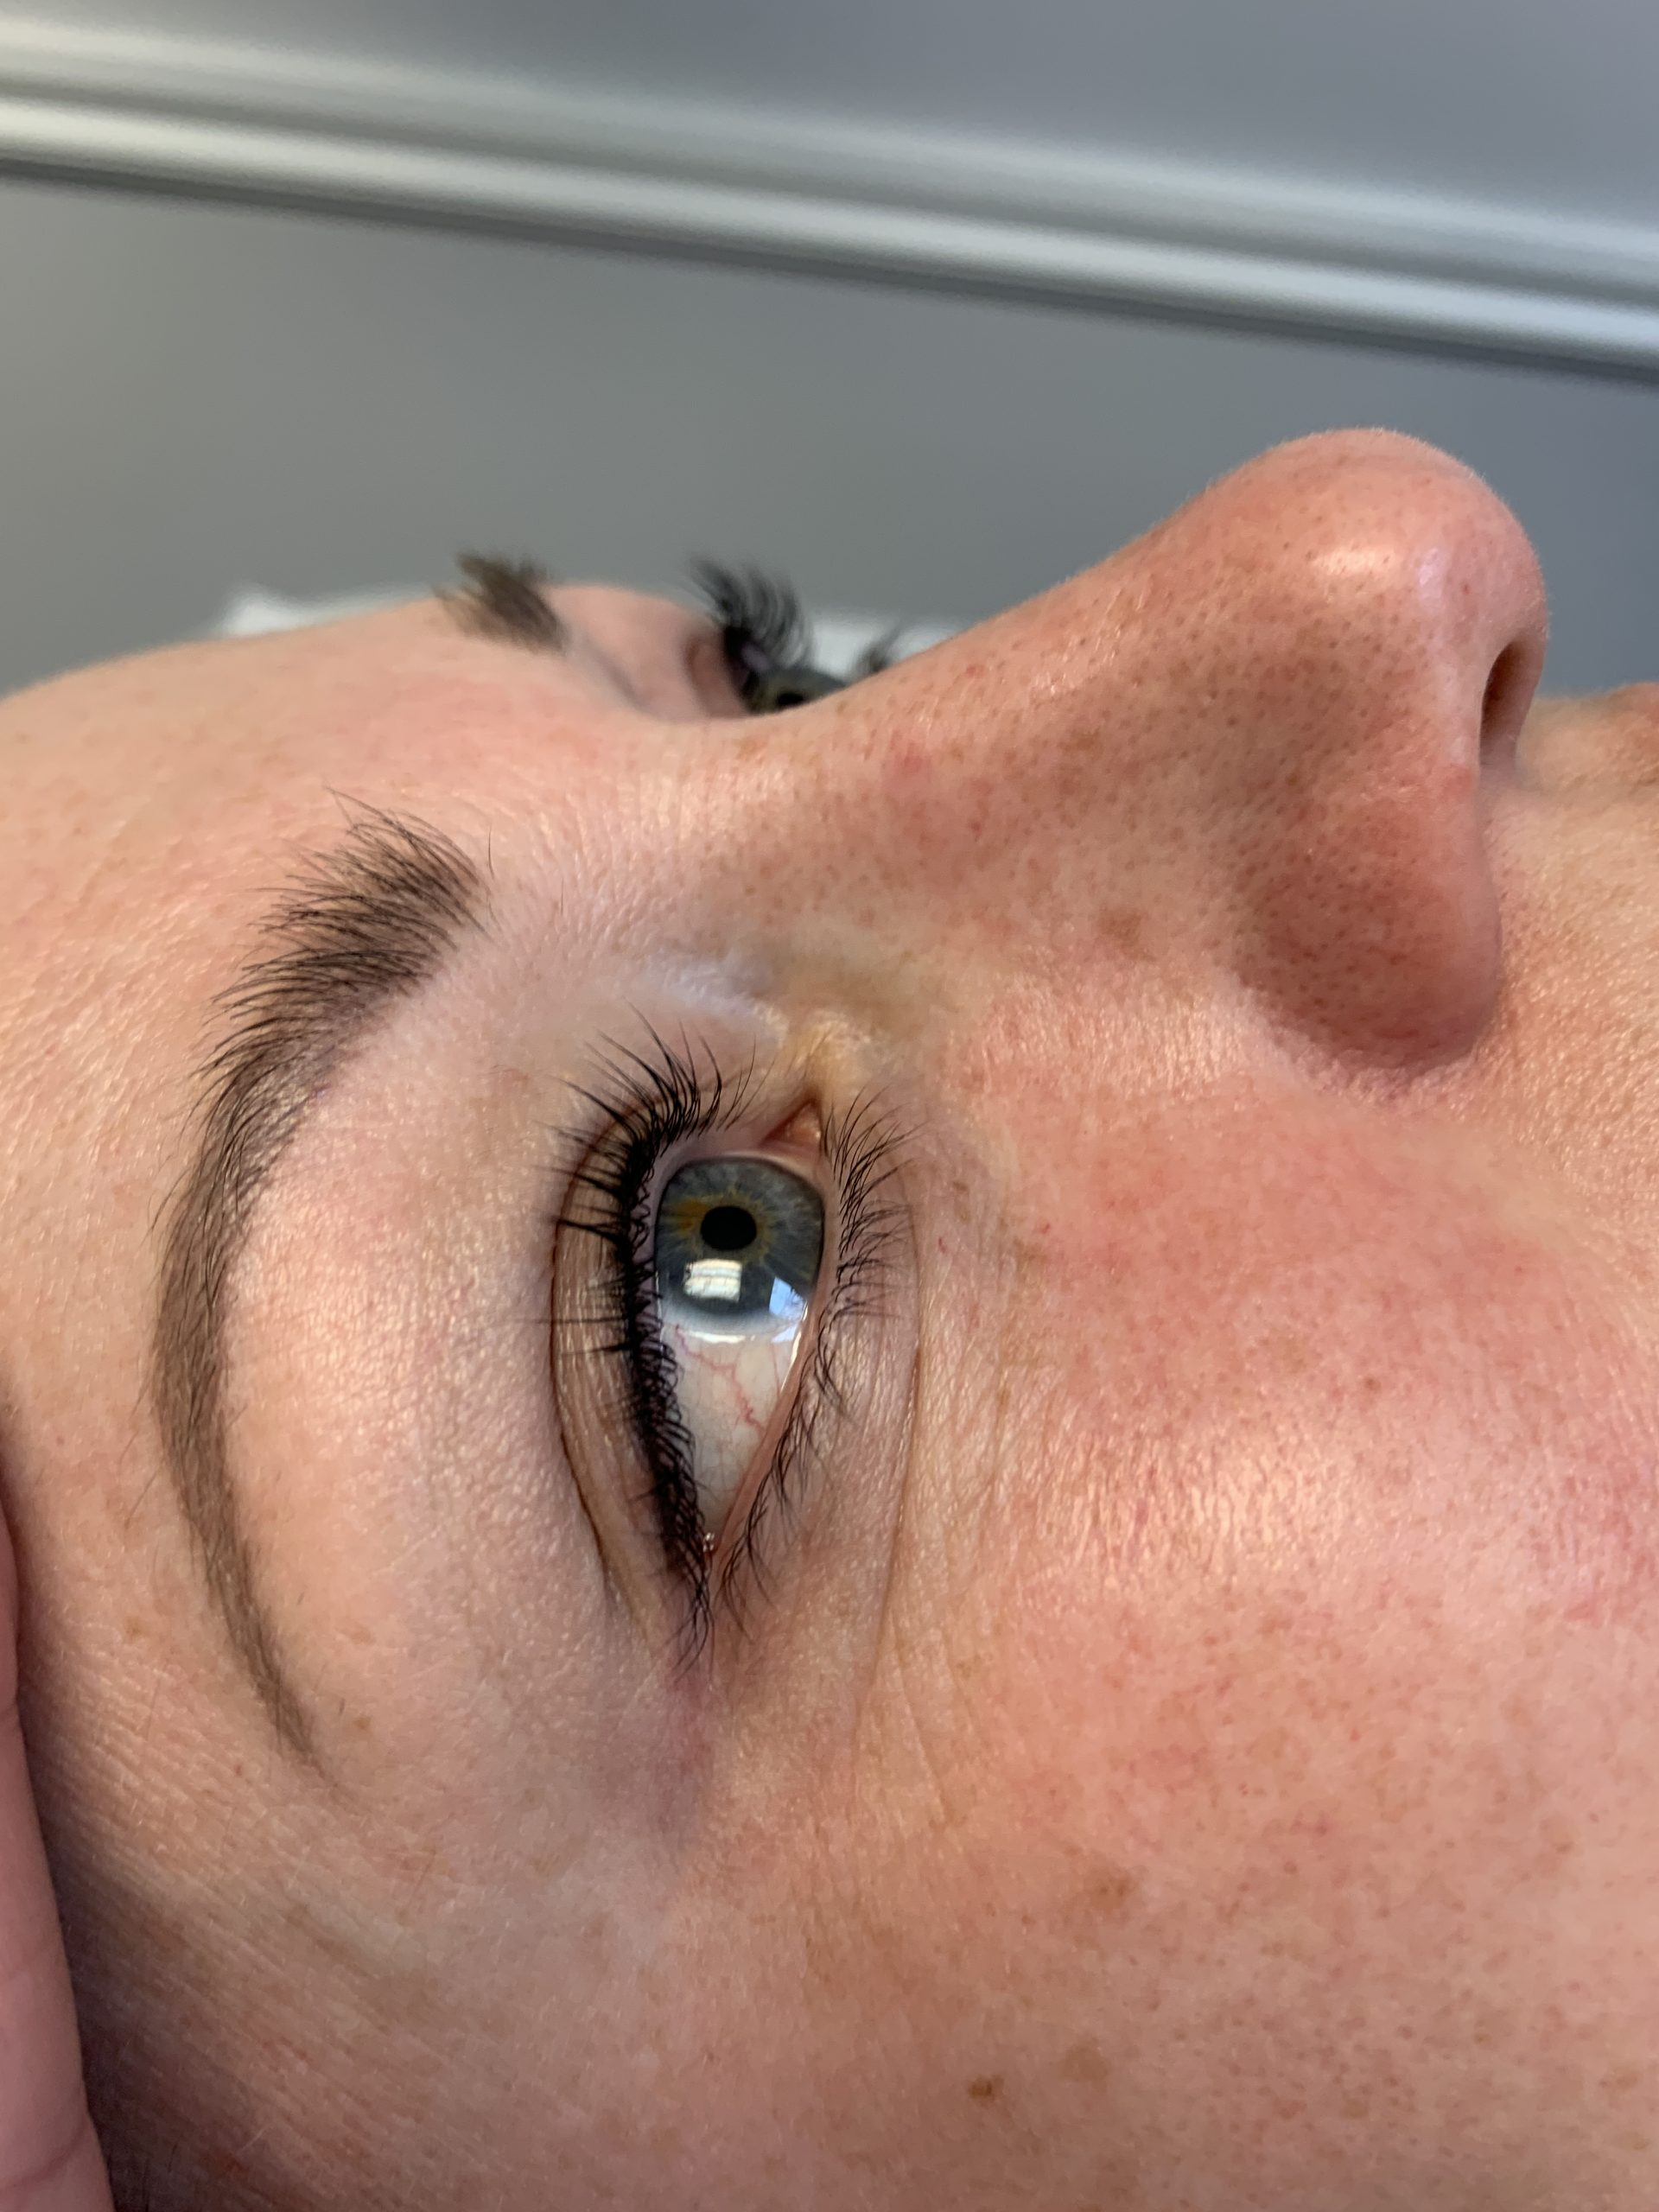 Permanent Eyeliner Service at 3D Brows - Utah Eyeliner Tattoo